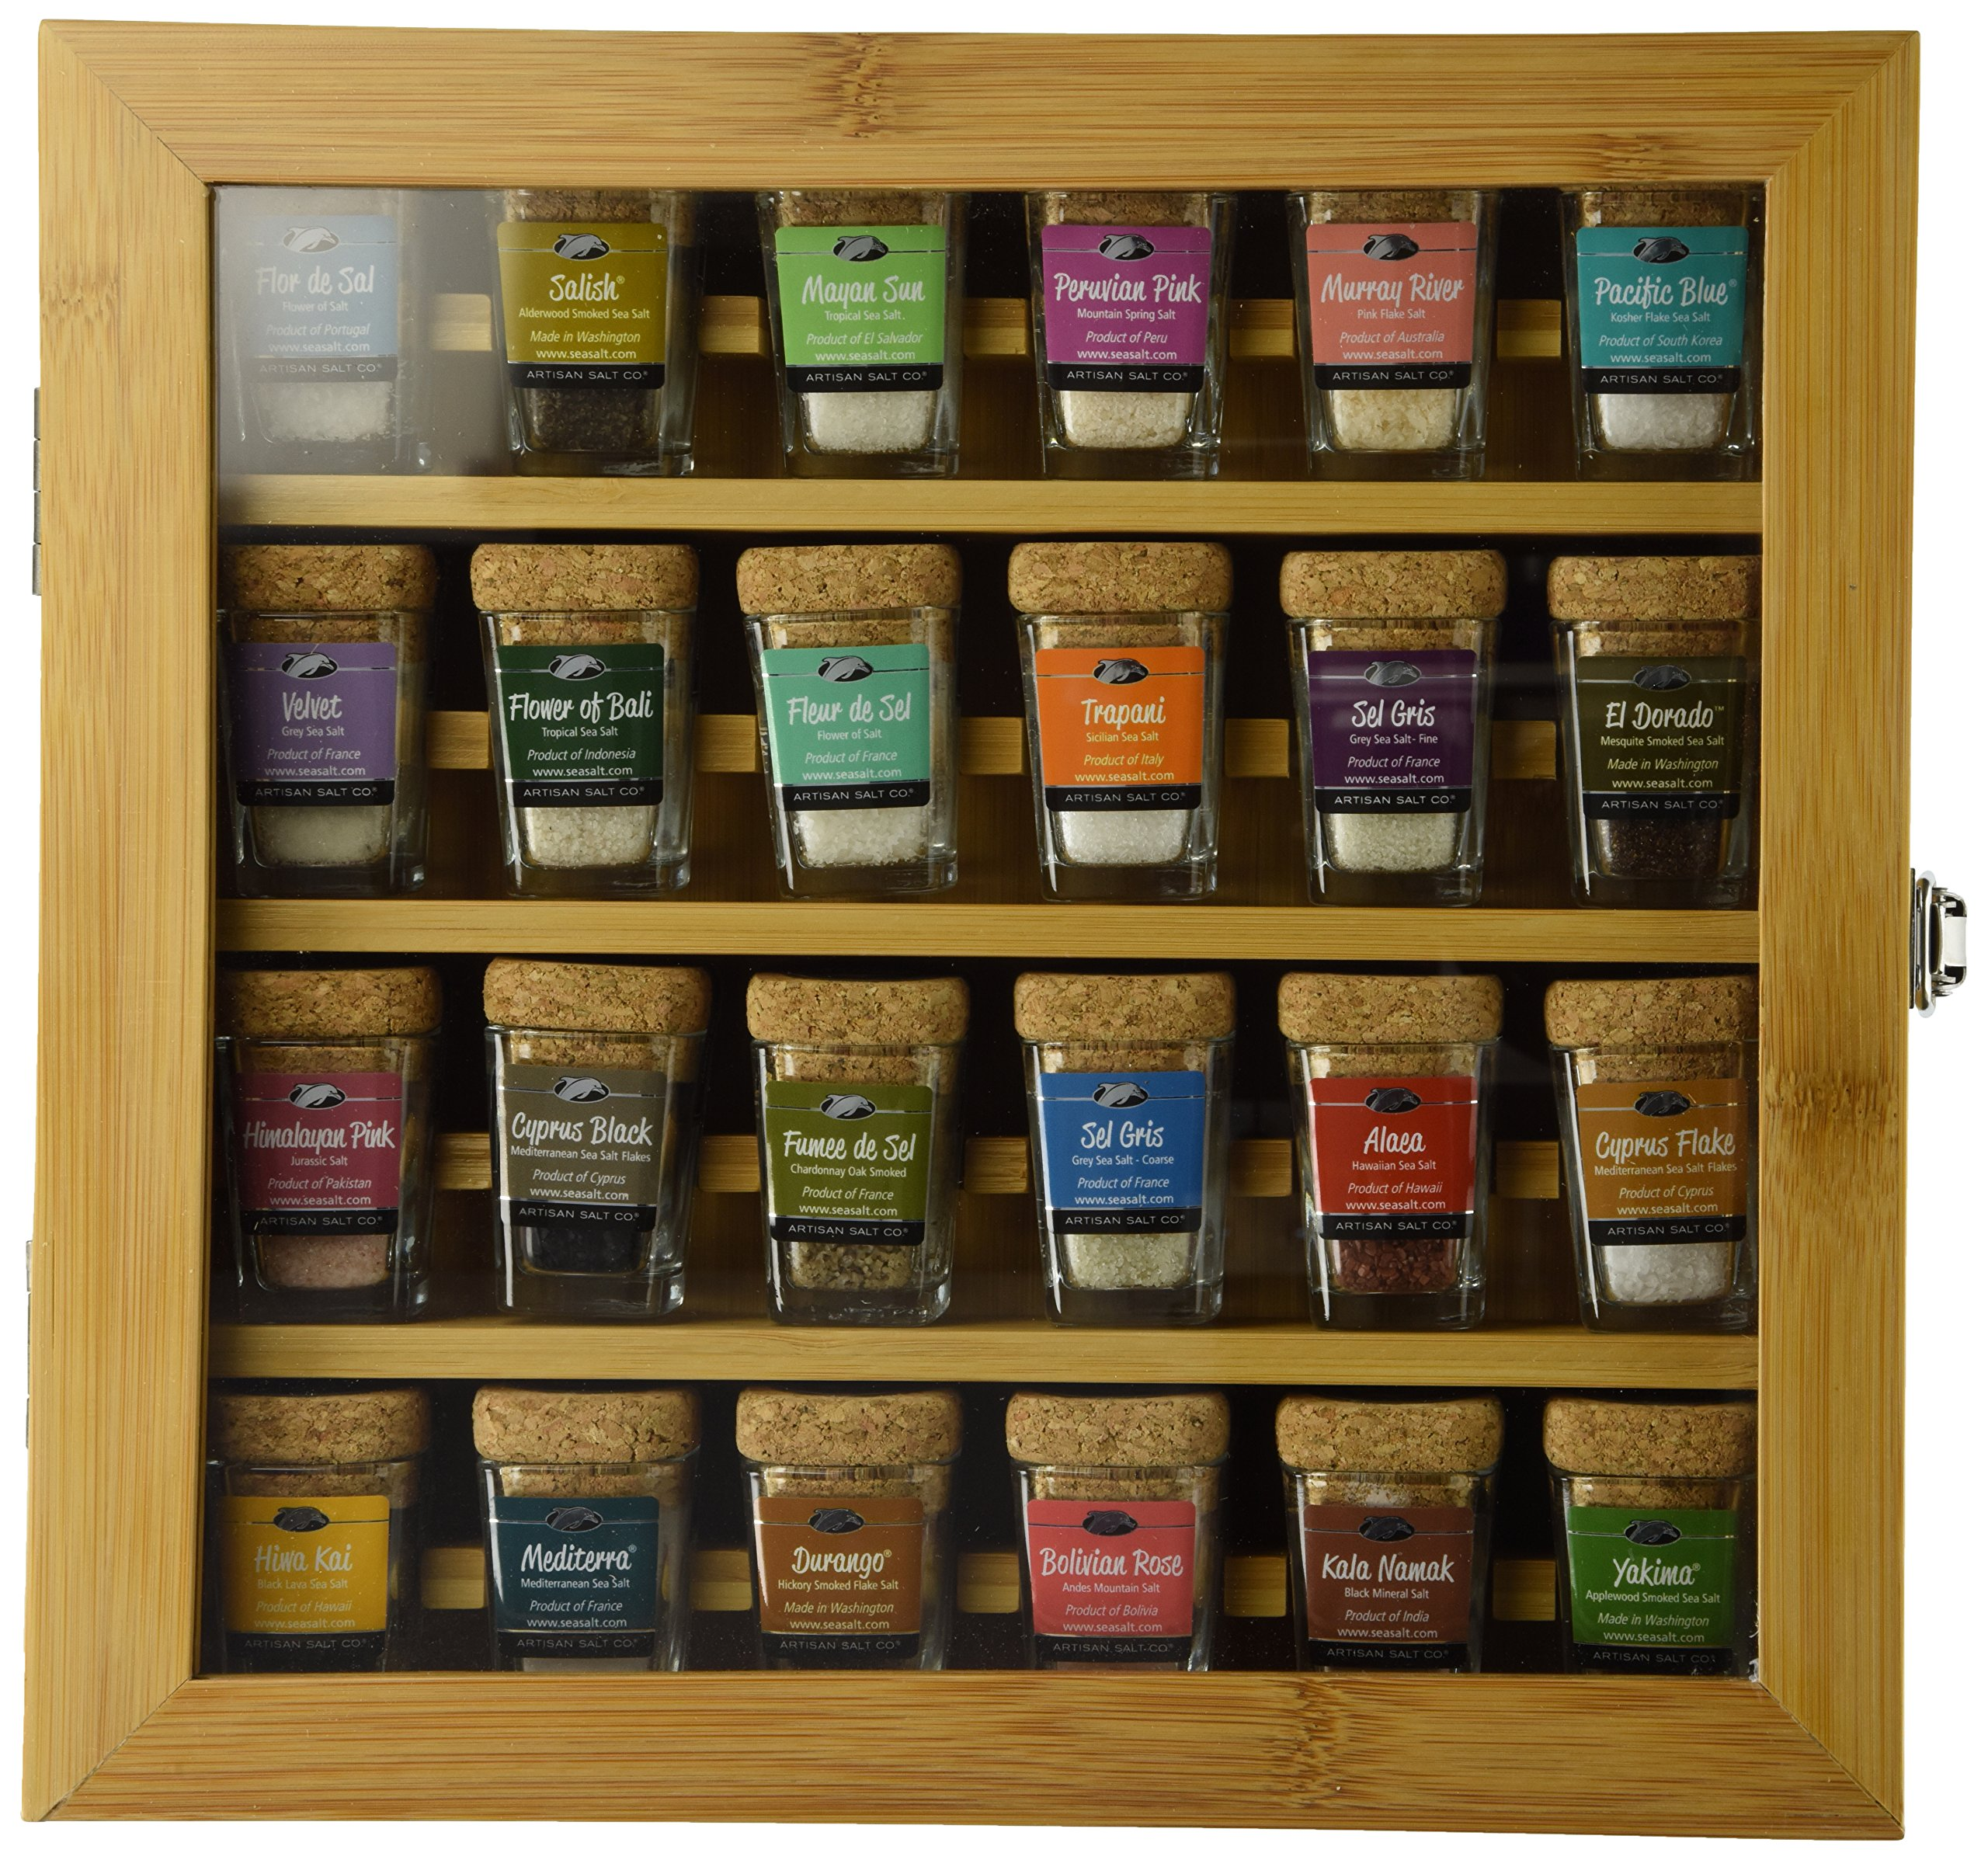 The Best Salts in The World - Collection of 24 Mini-Jars With Cork Tops in Bamboo Presentation Box. The Salt Connoisseur Ultimate Gift!